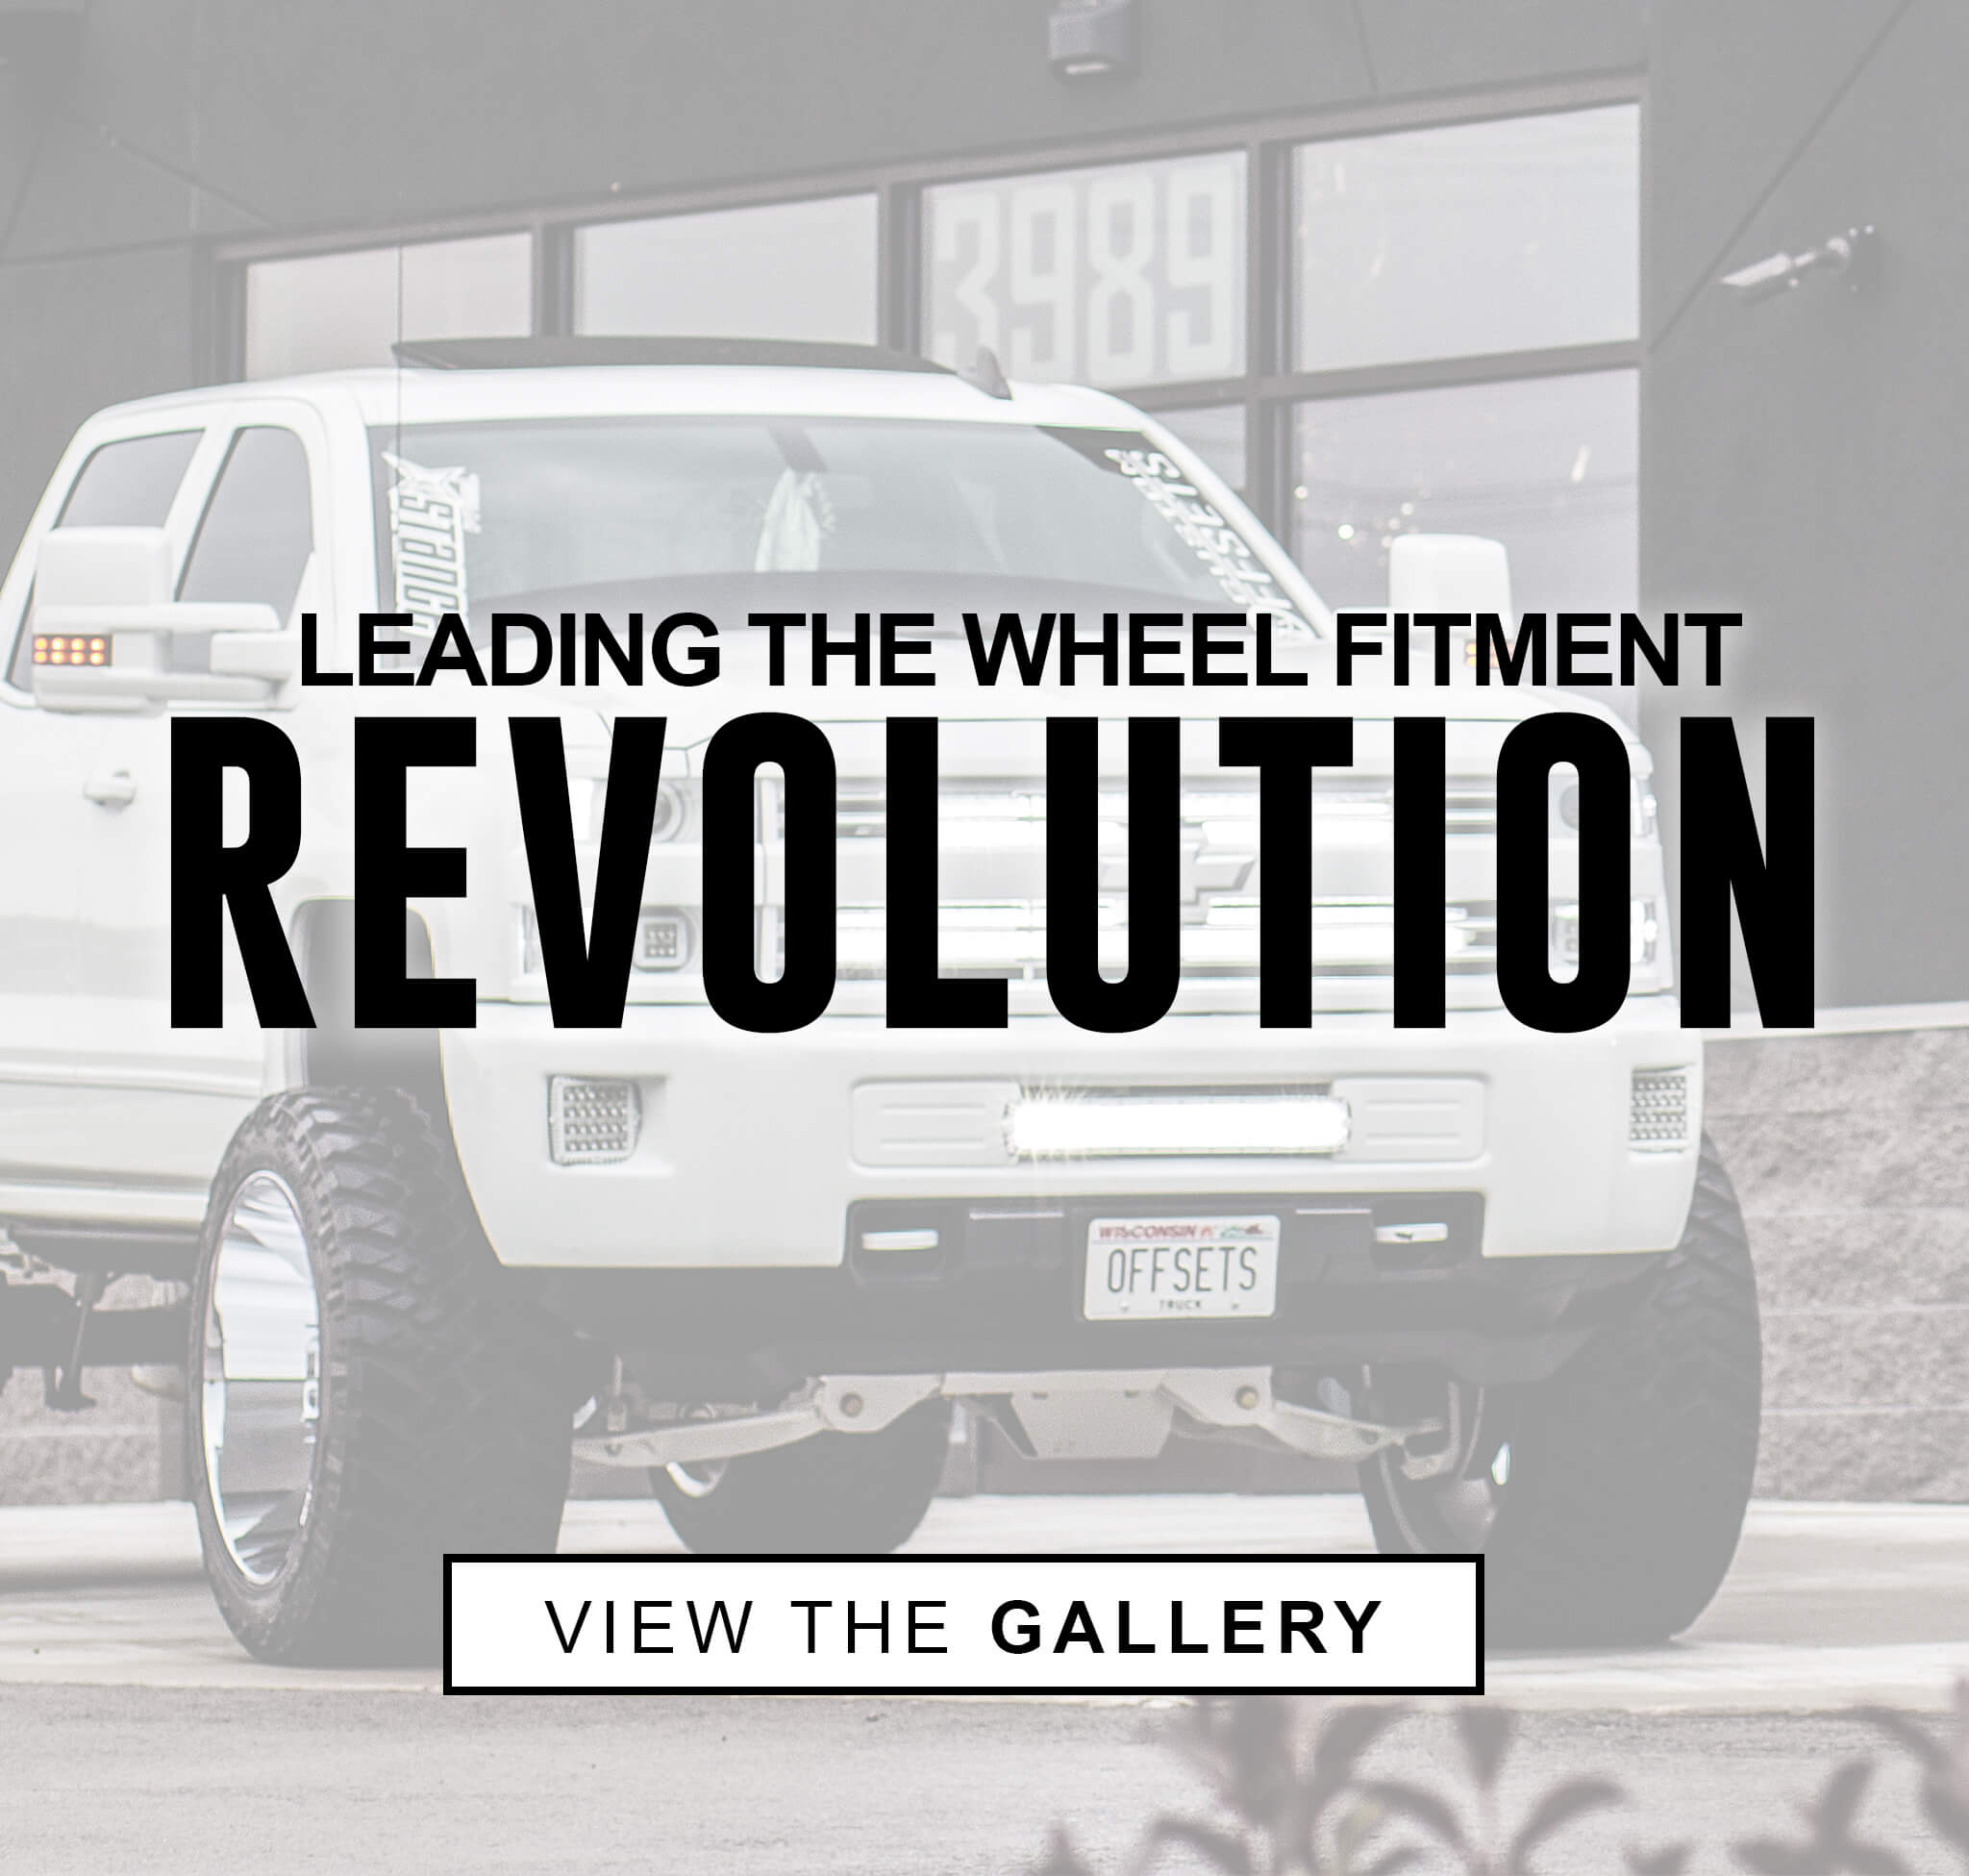 Leading the wheel fitment revolution, View our gallery